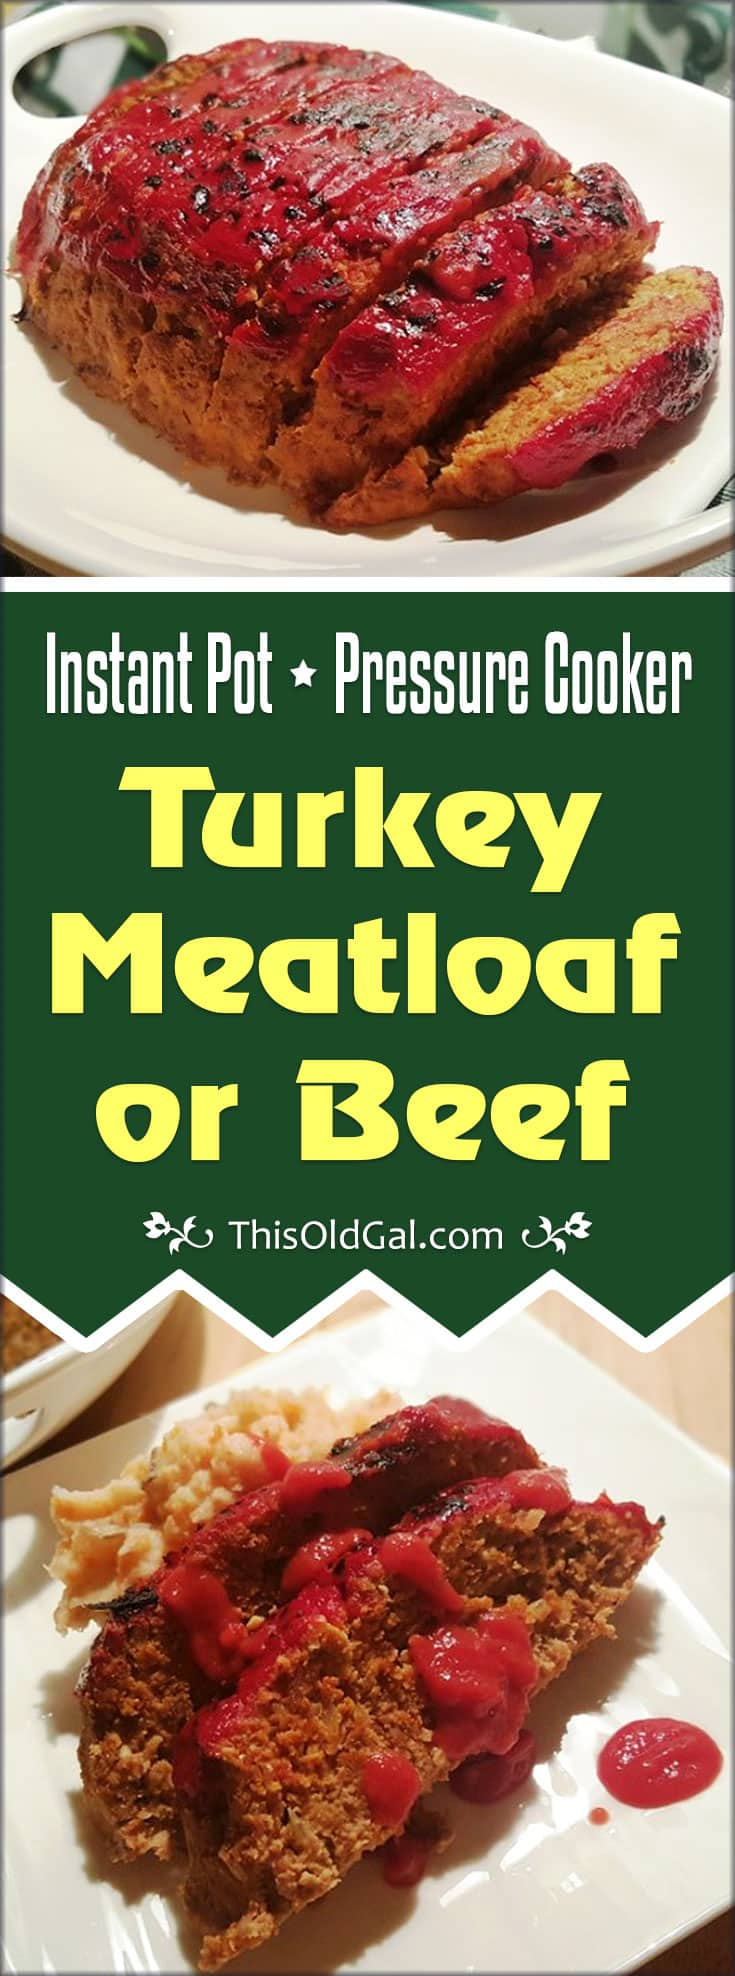 Instant Pot Pressure Cooker Turkey Meatloaf (or Beef)